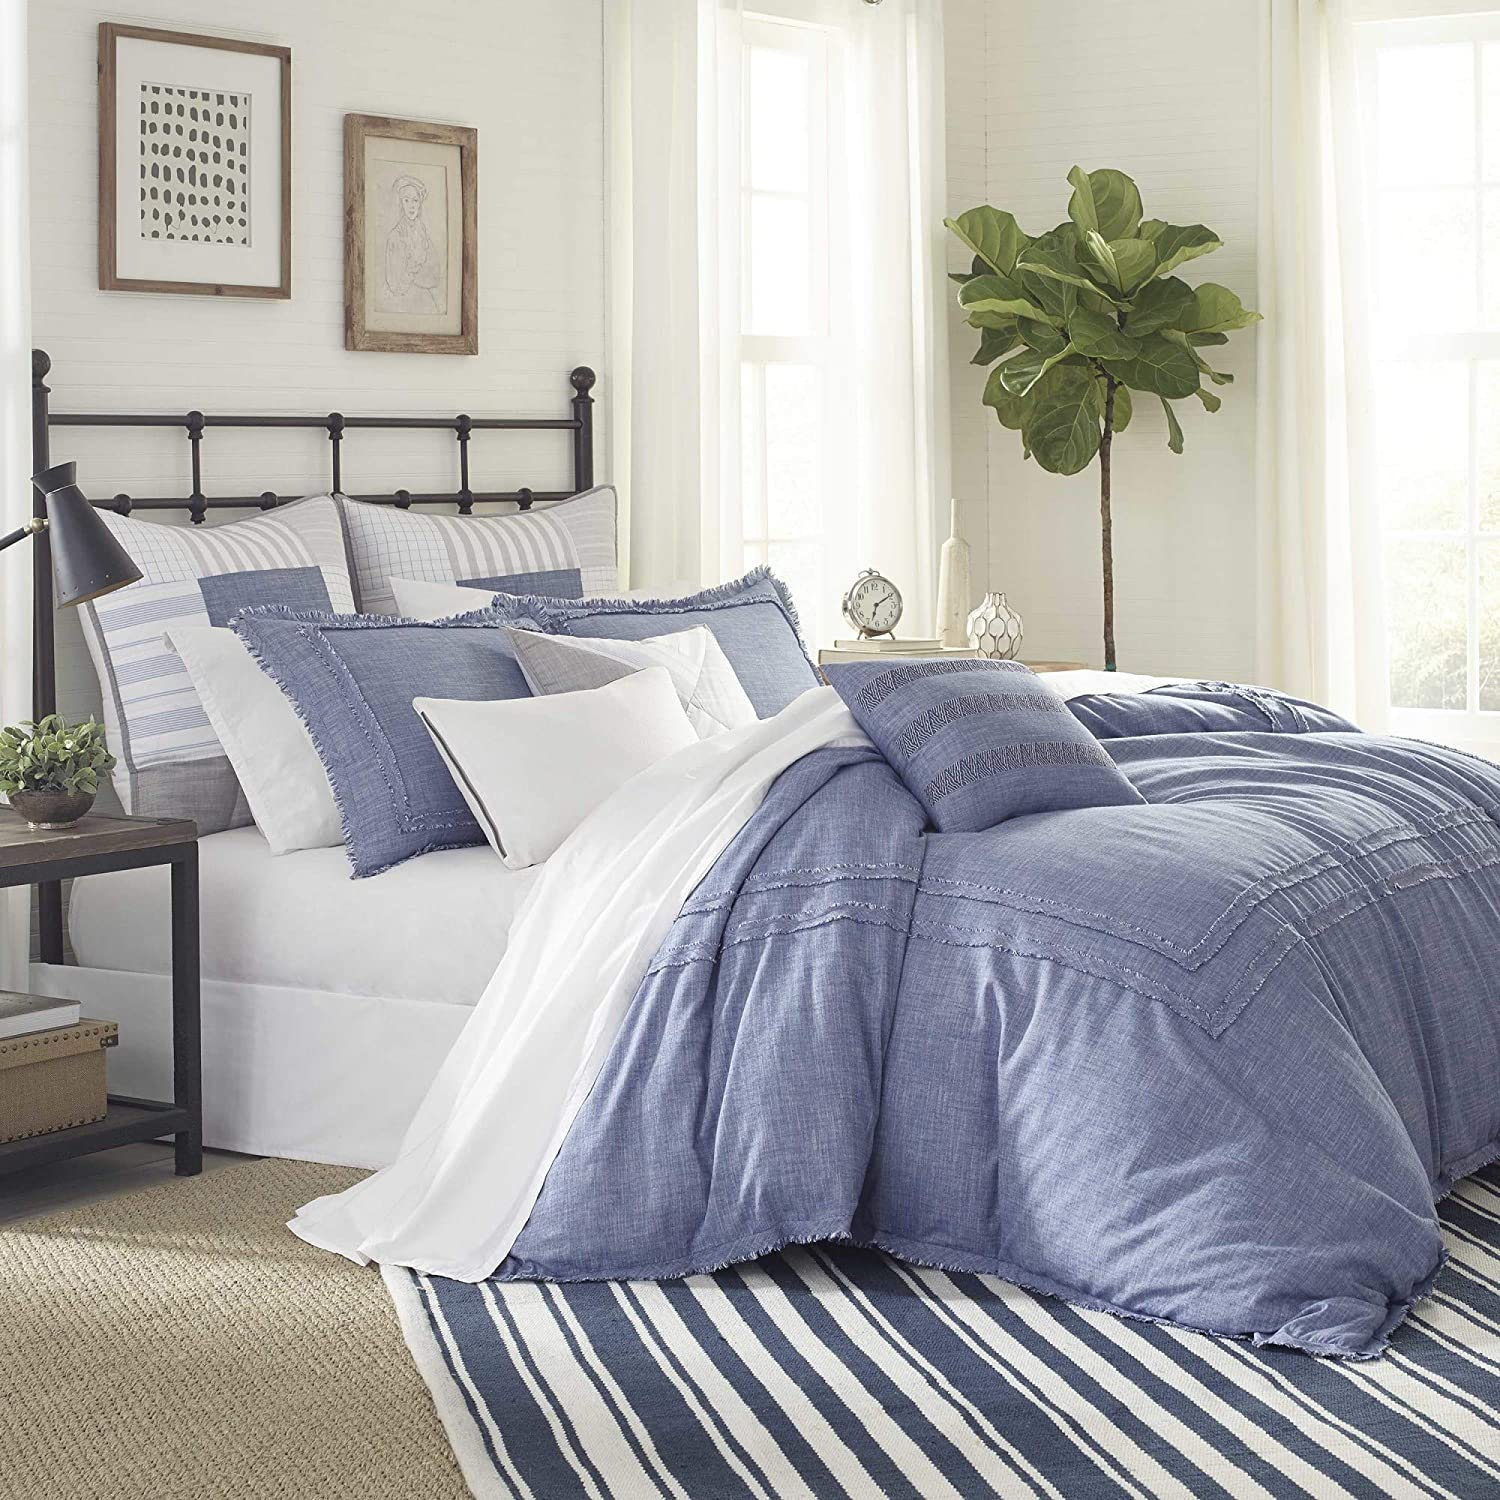 Southern Tide Home Bayview Comforter Set, Twin, Blue